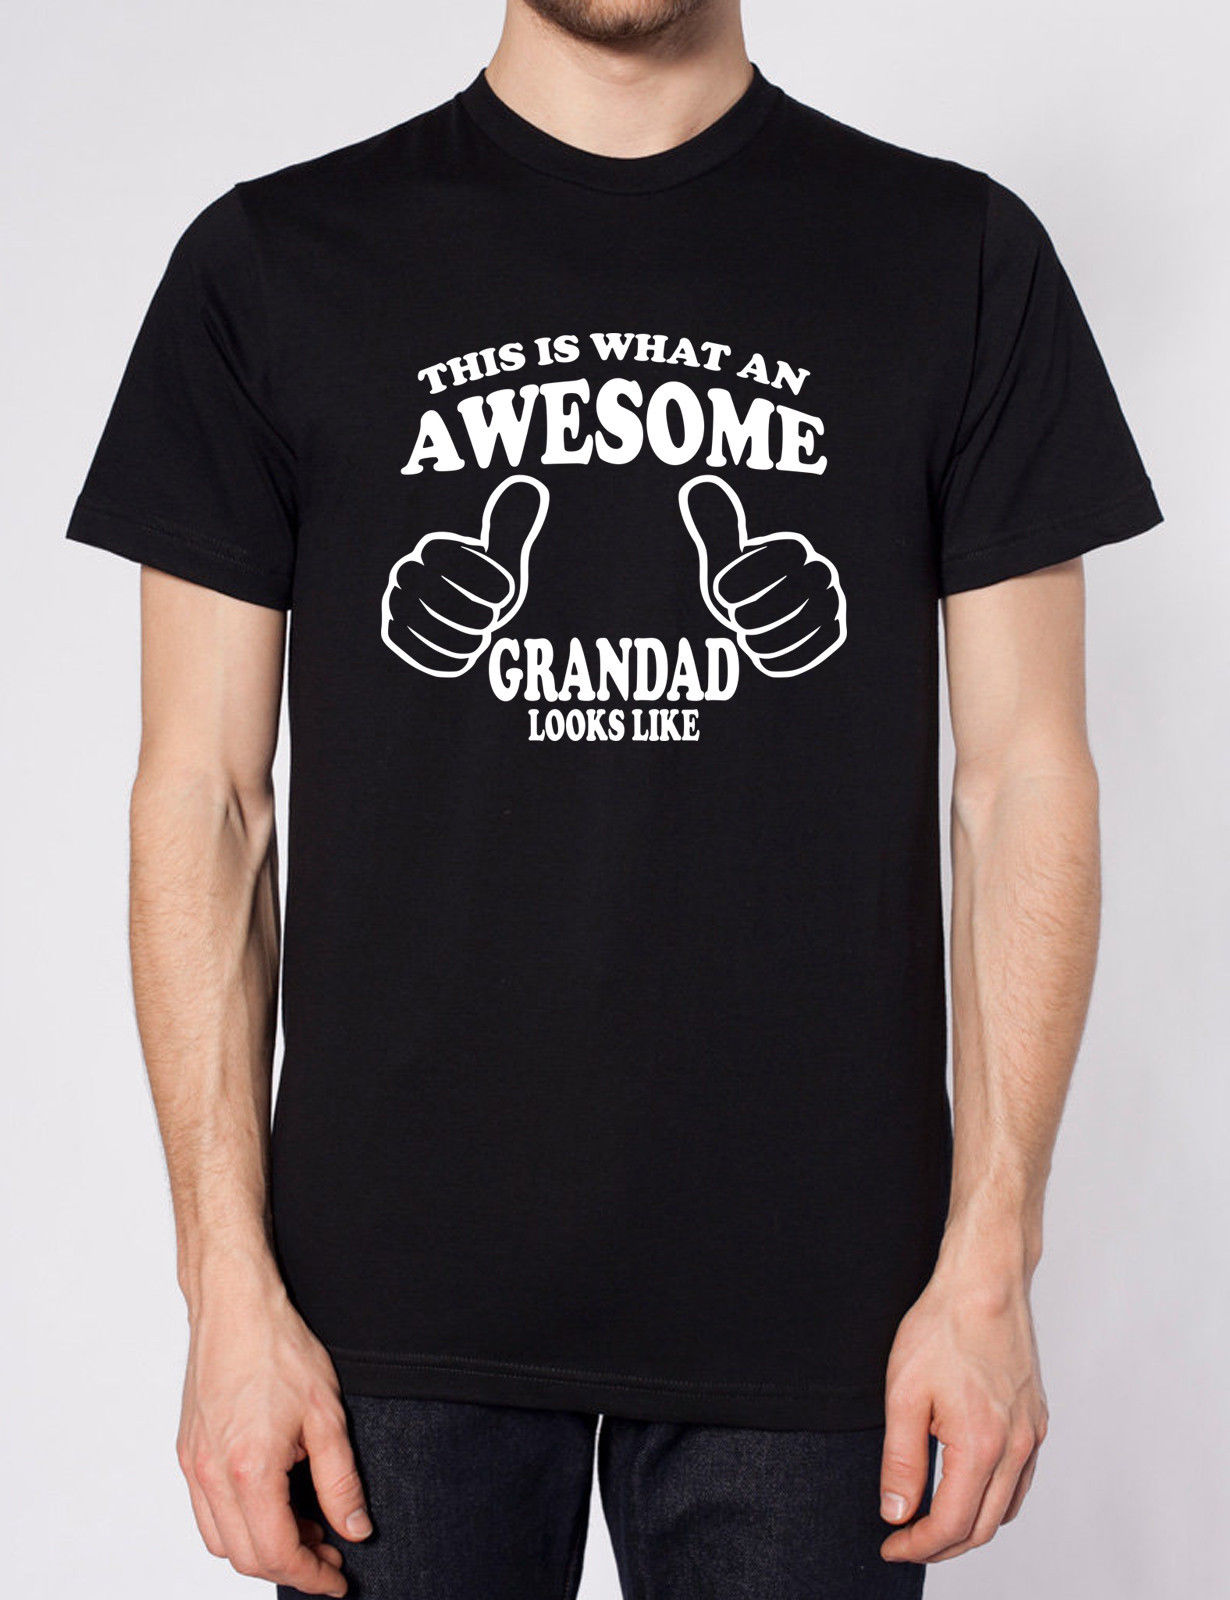 THIS IS WHAT AN AWESOME GRANDAD LOOKS LIKE T SHIRT FATHERS DAY XMAS GIFT PRESENT